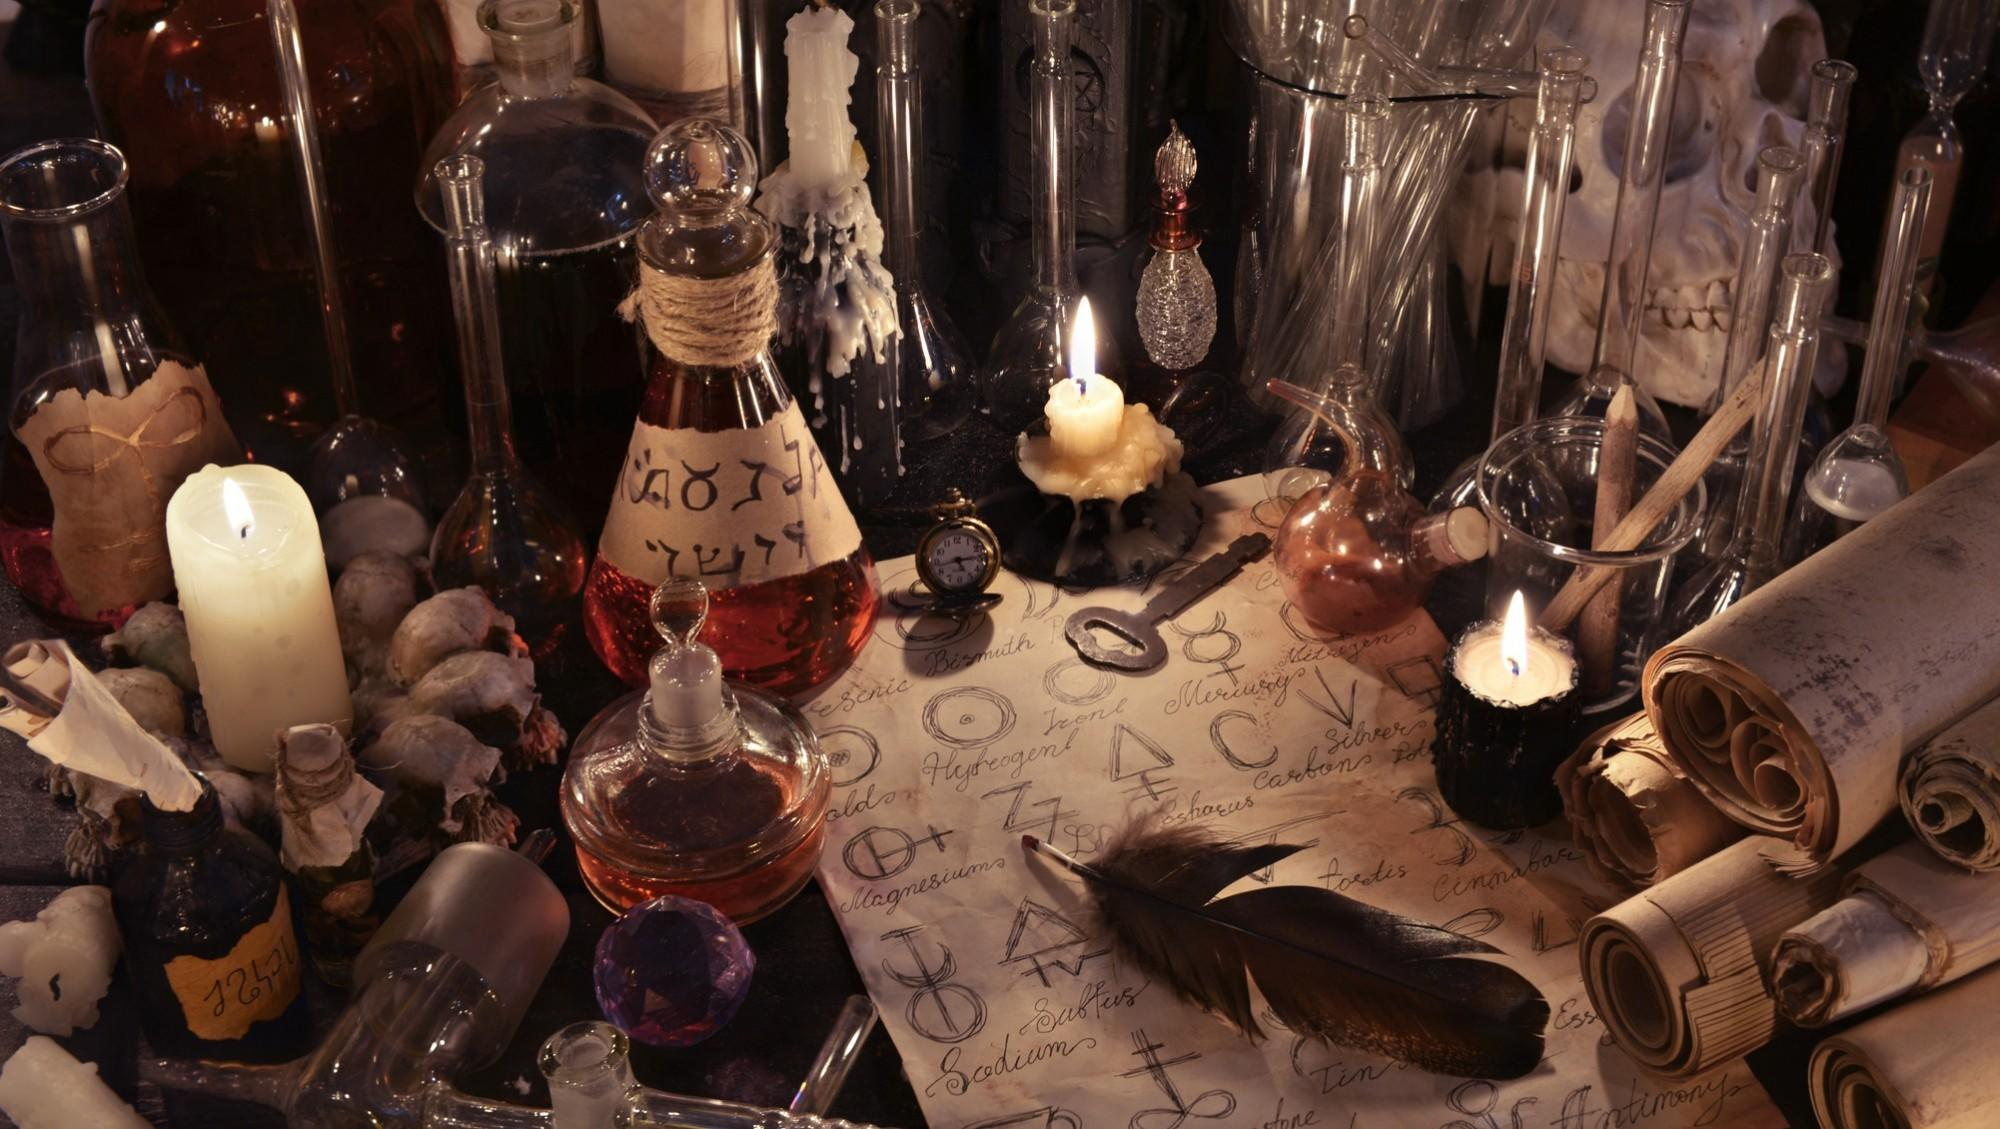 Still life with alchemy paper, bottles and candles